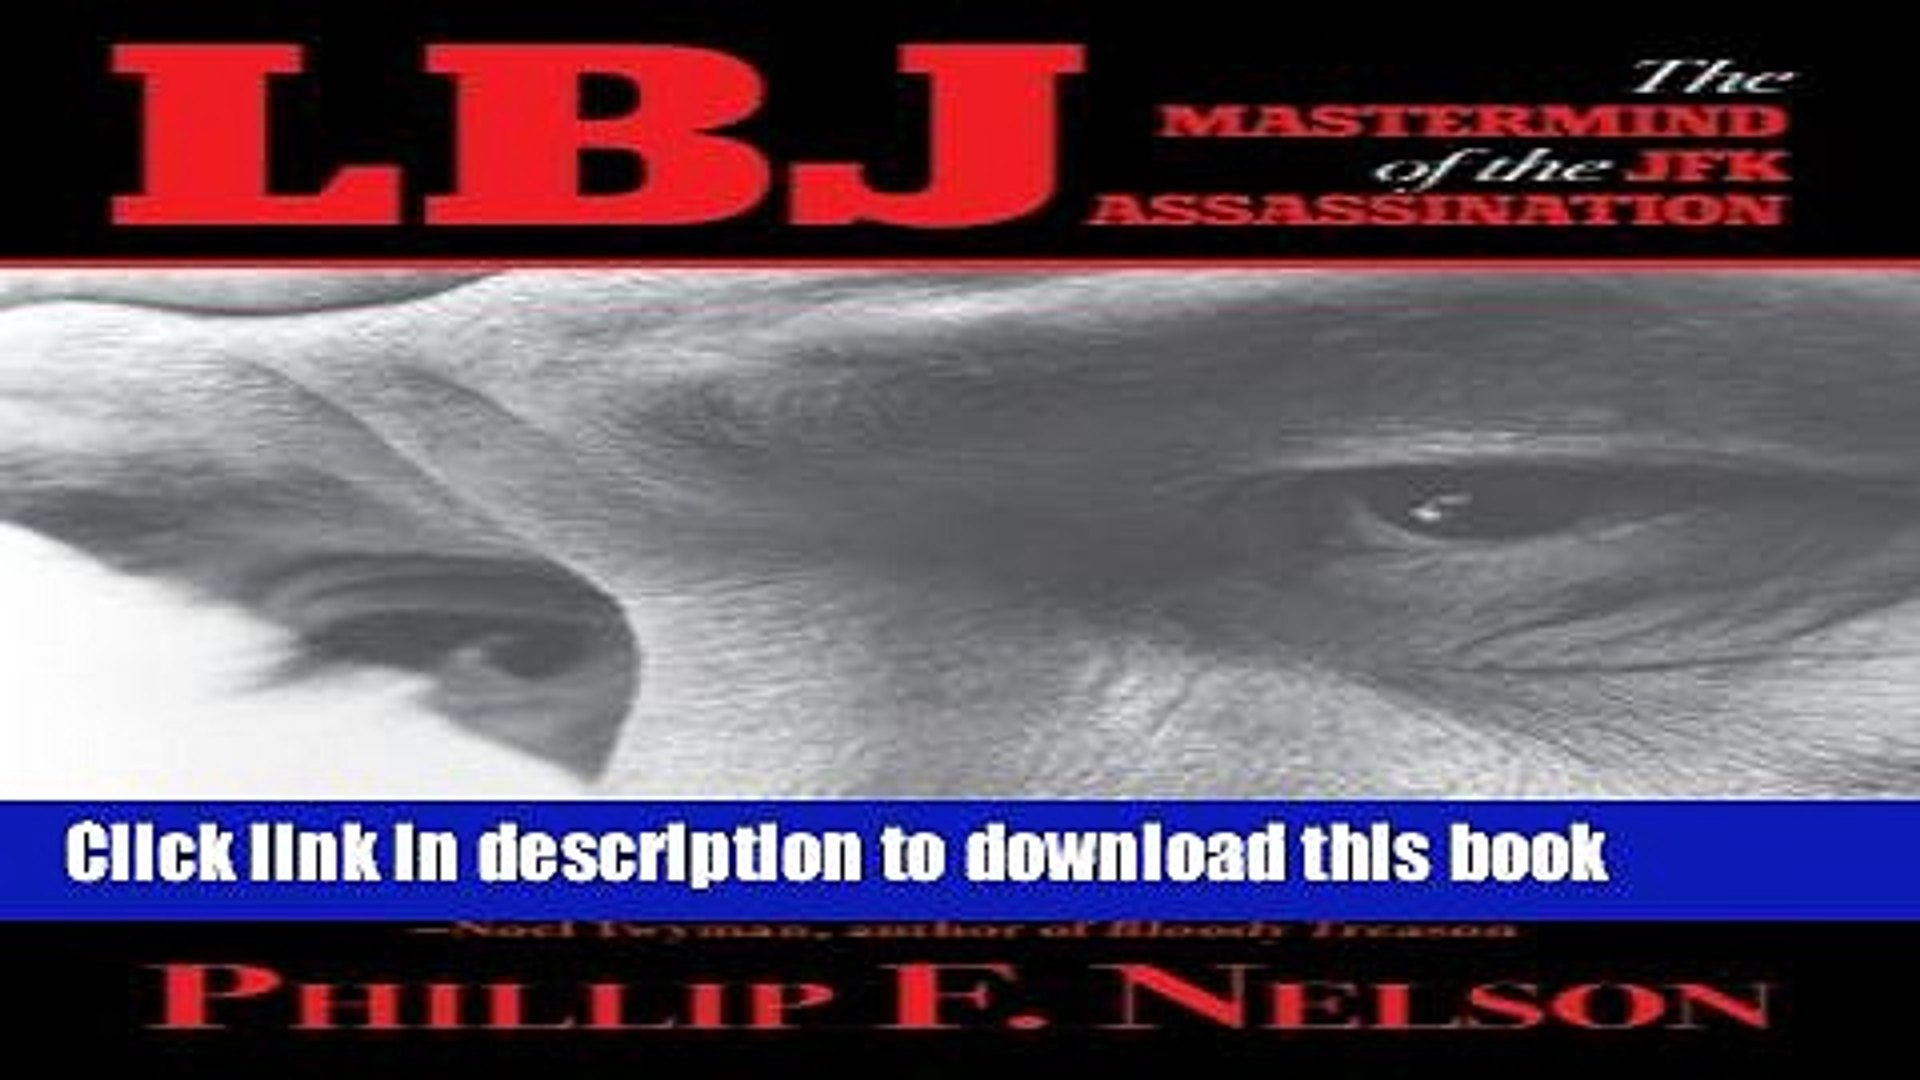 Download LBJ: The Mastermind of the JFK Assassination Free